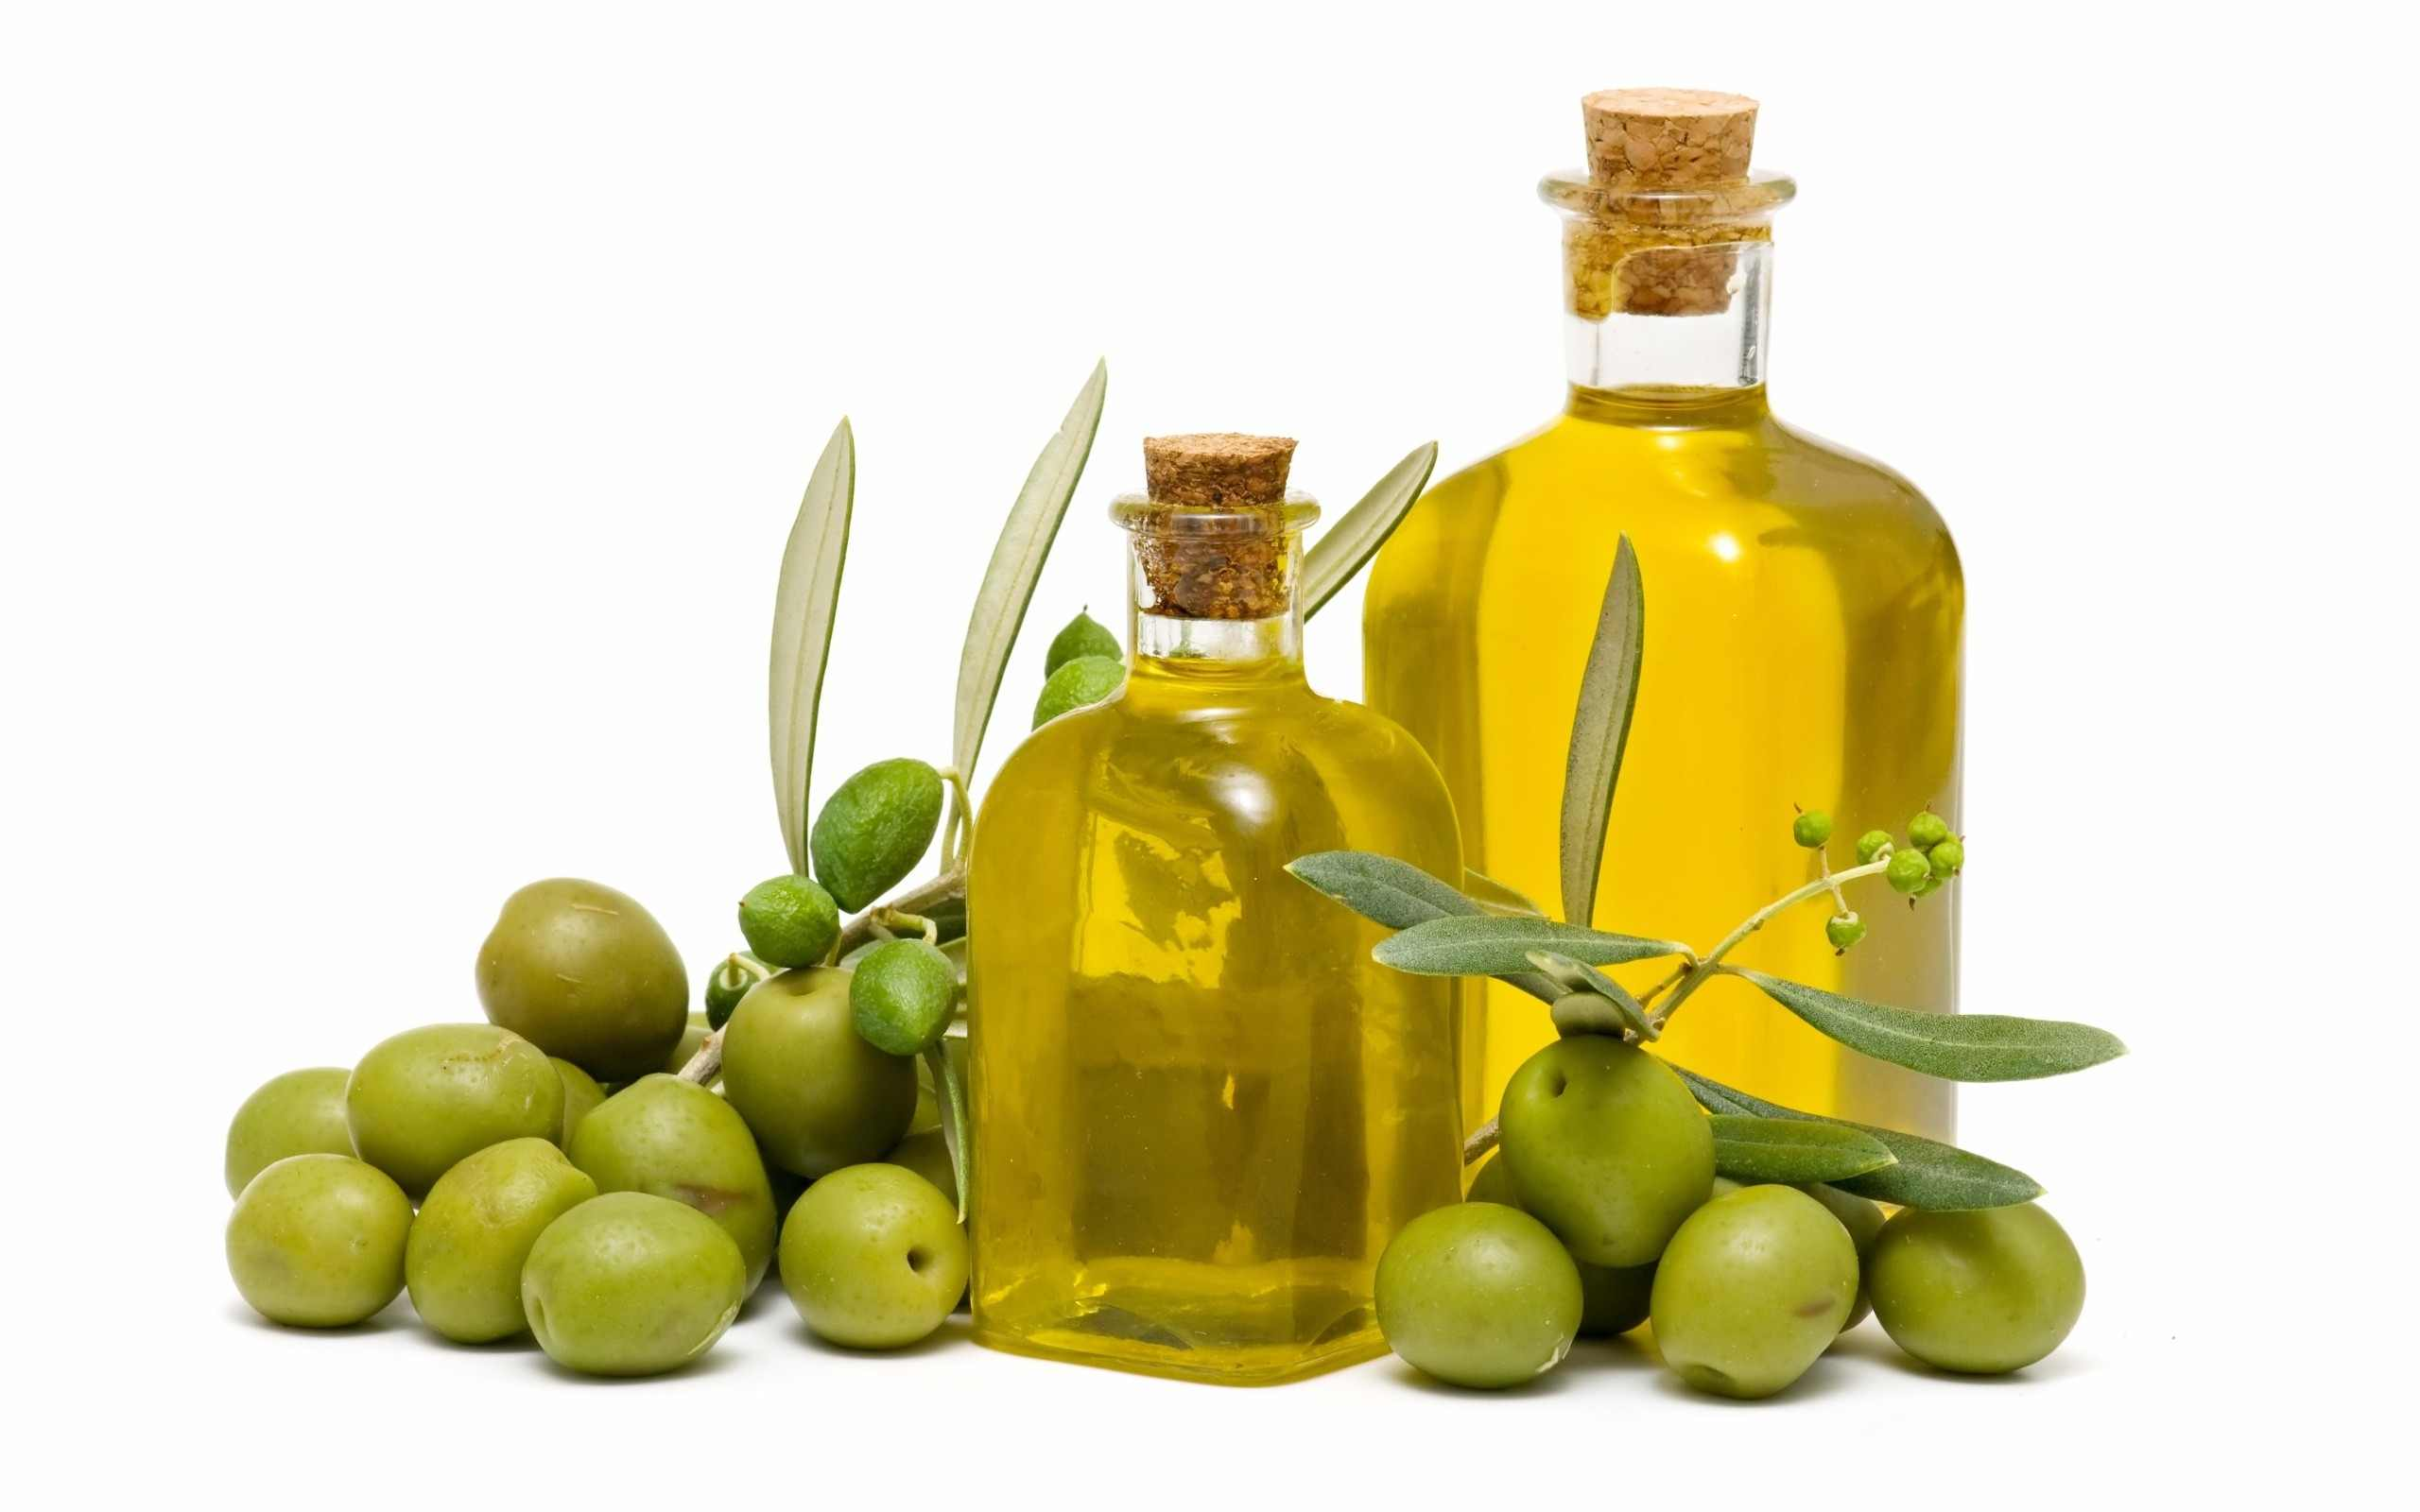 Extra Virgin Olive Oil Market SWOT analysis & Key Business Strategies | Salov North America, Agro Sevilla, Star Fine, Deoleo